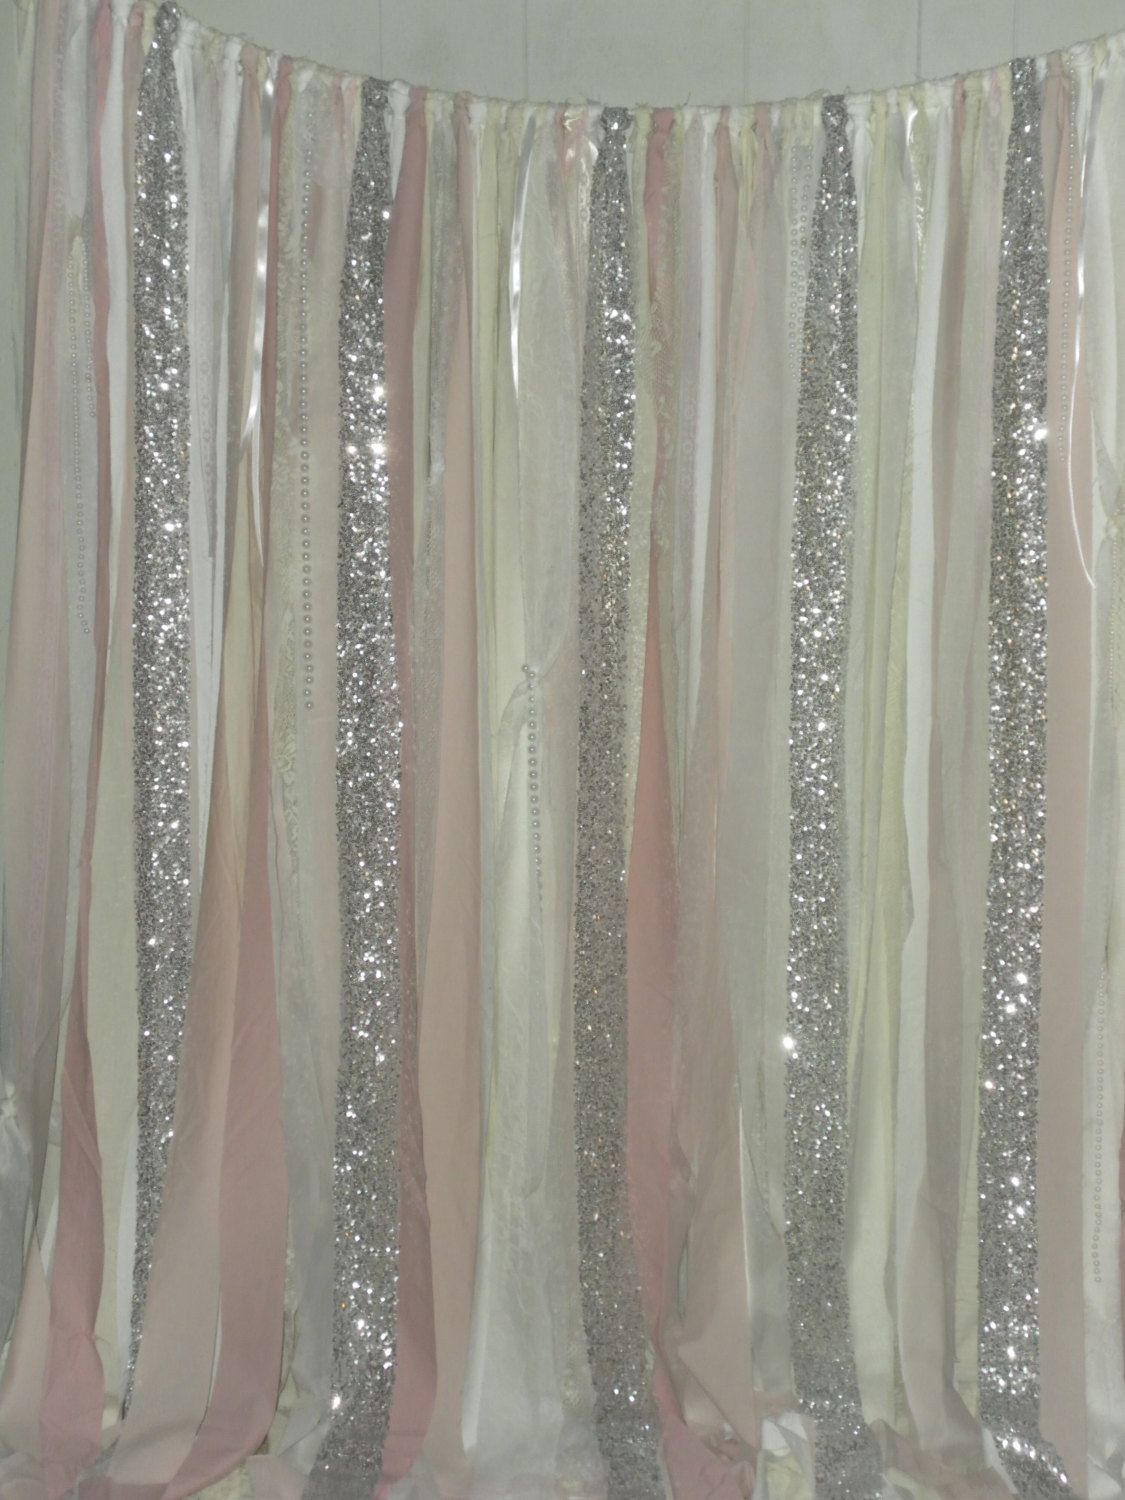 Blush Backdrop Silver Sequin Curtains Fabric Rag Garland Nursery Ribbon Pink Gray White Ivory